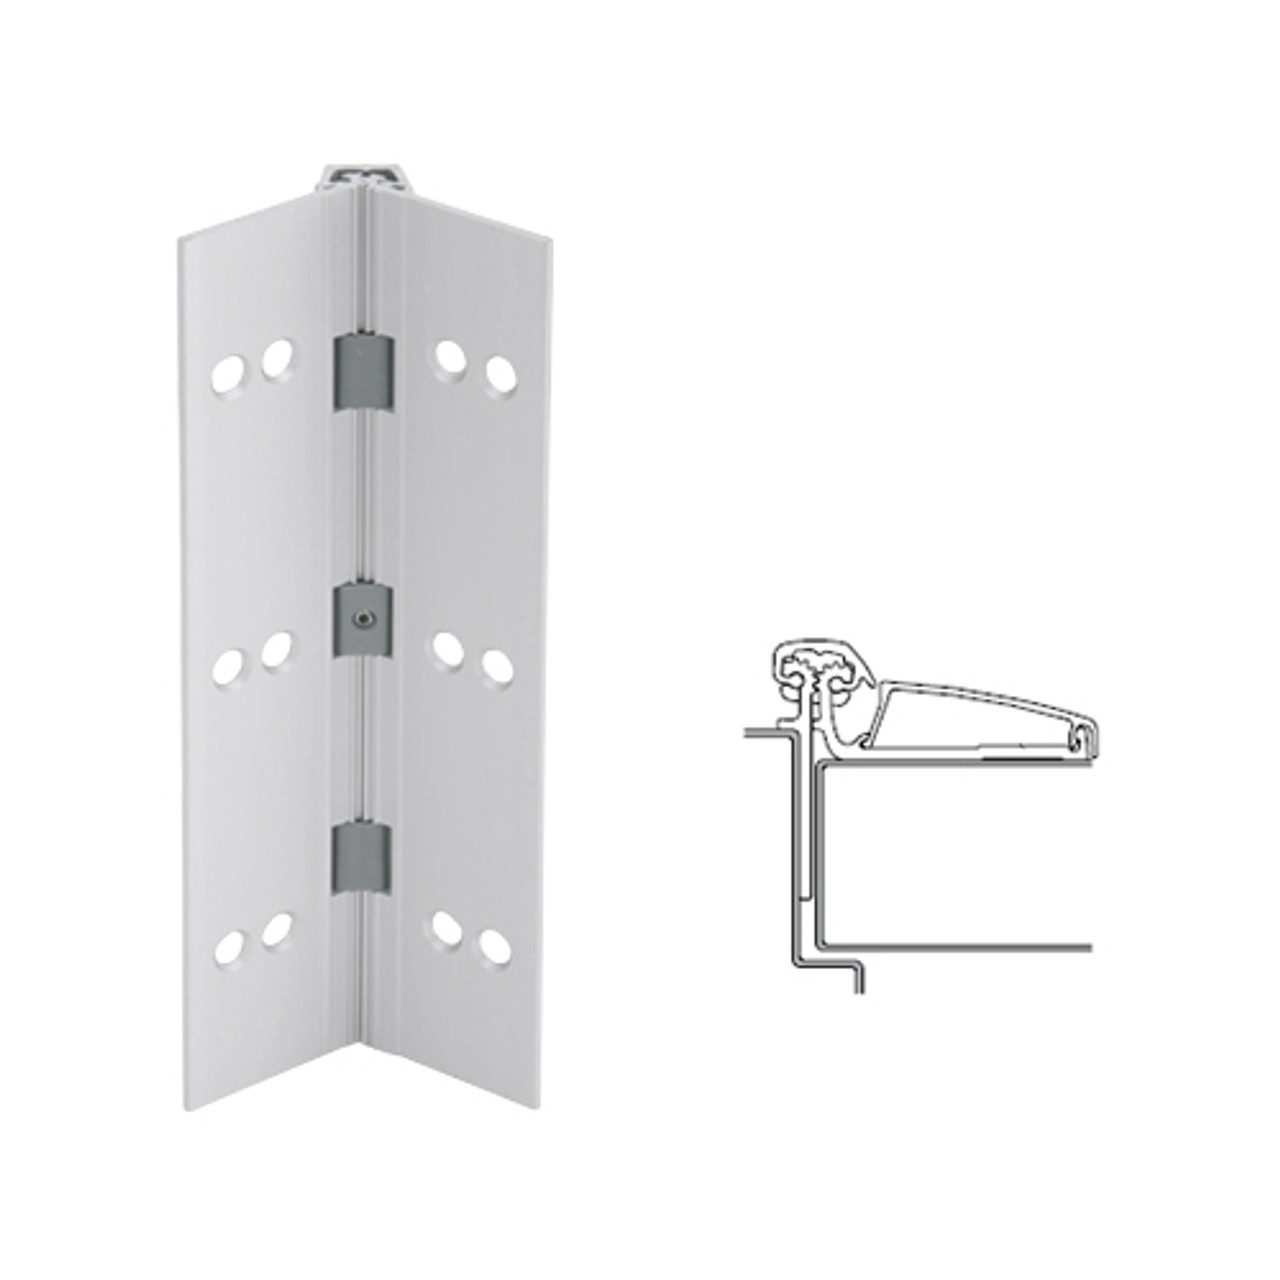 045XY-US28-120-SECWDHM IVES Adjustable Half Surface Continuous Geared Hinges with Security Screws - Hex Pin Drive in Satin Aluminum